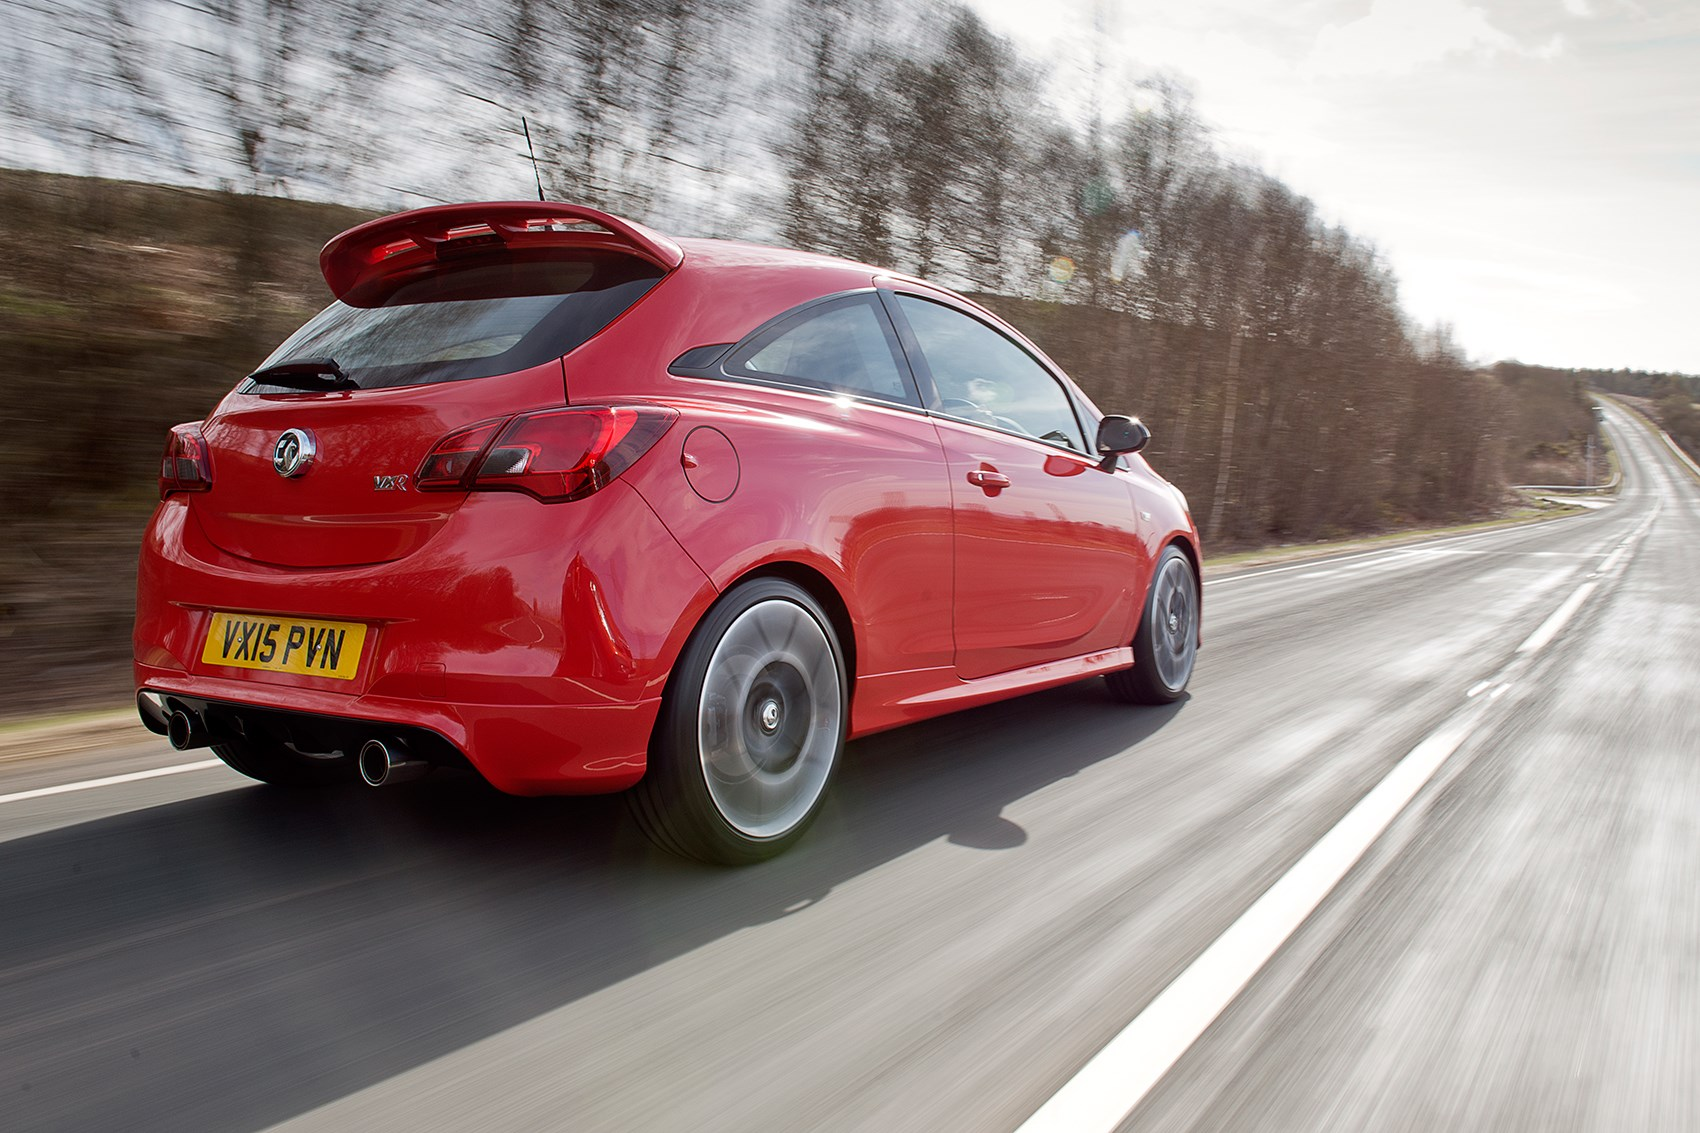 Used Mclaren For Sale >> Vauxhall Corsa VXR (2015) review | CAR Magazine